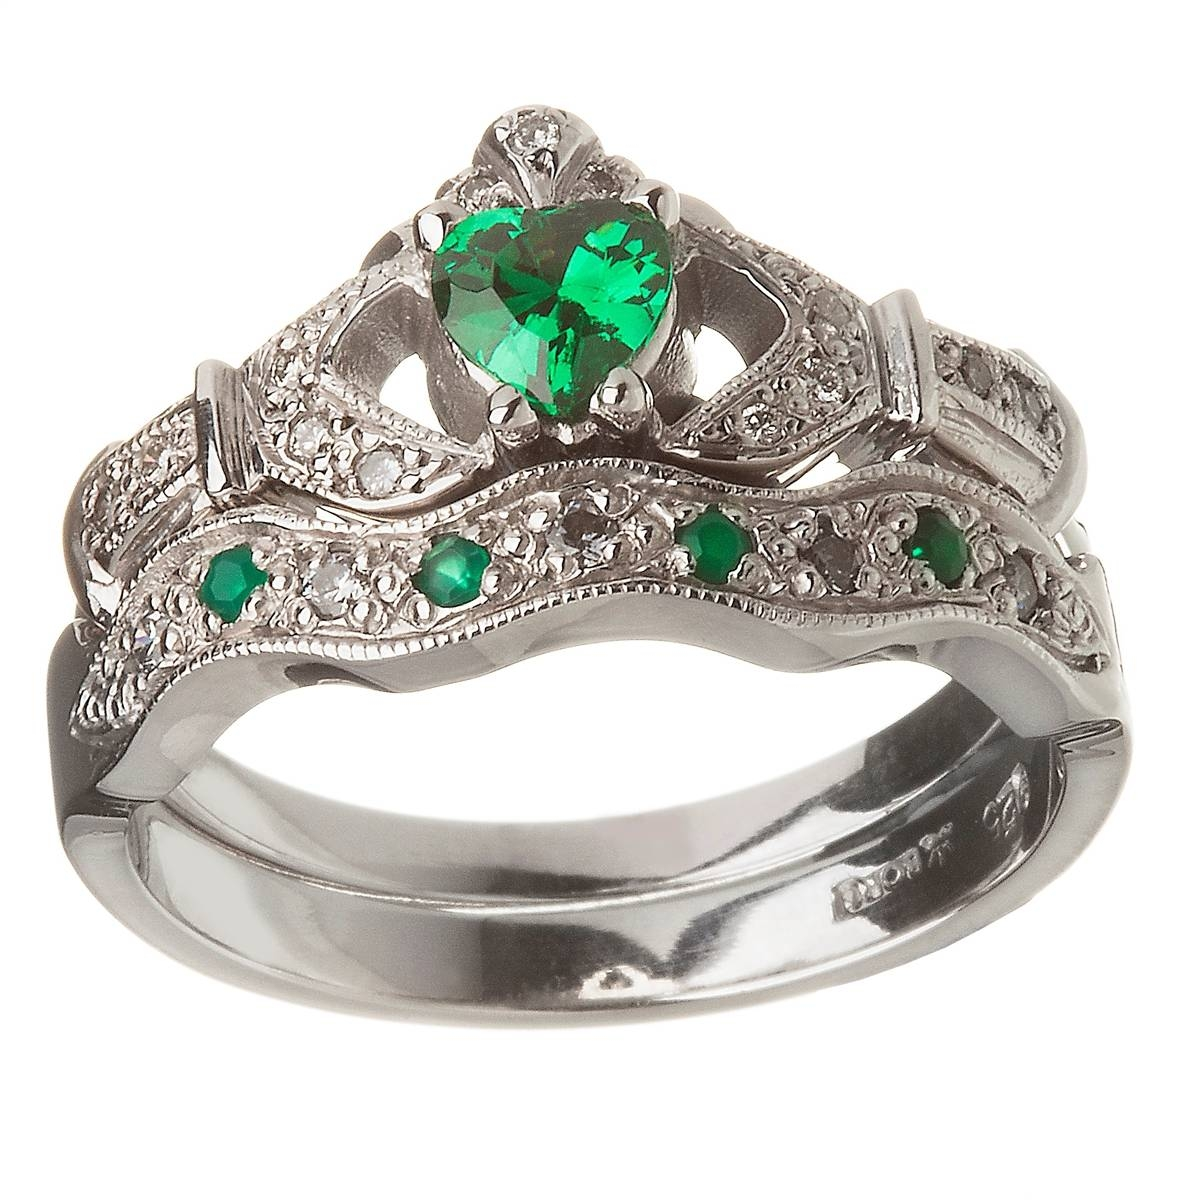 14K White Gold Emerald Set Heart Claddagh Ring & Wedding Ring Set Intended For Claddagh Rings Engagement Sets (View 2 of 15)